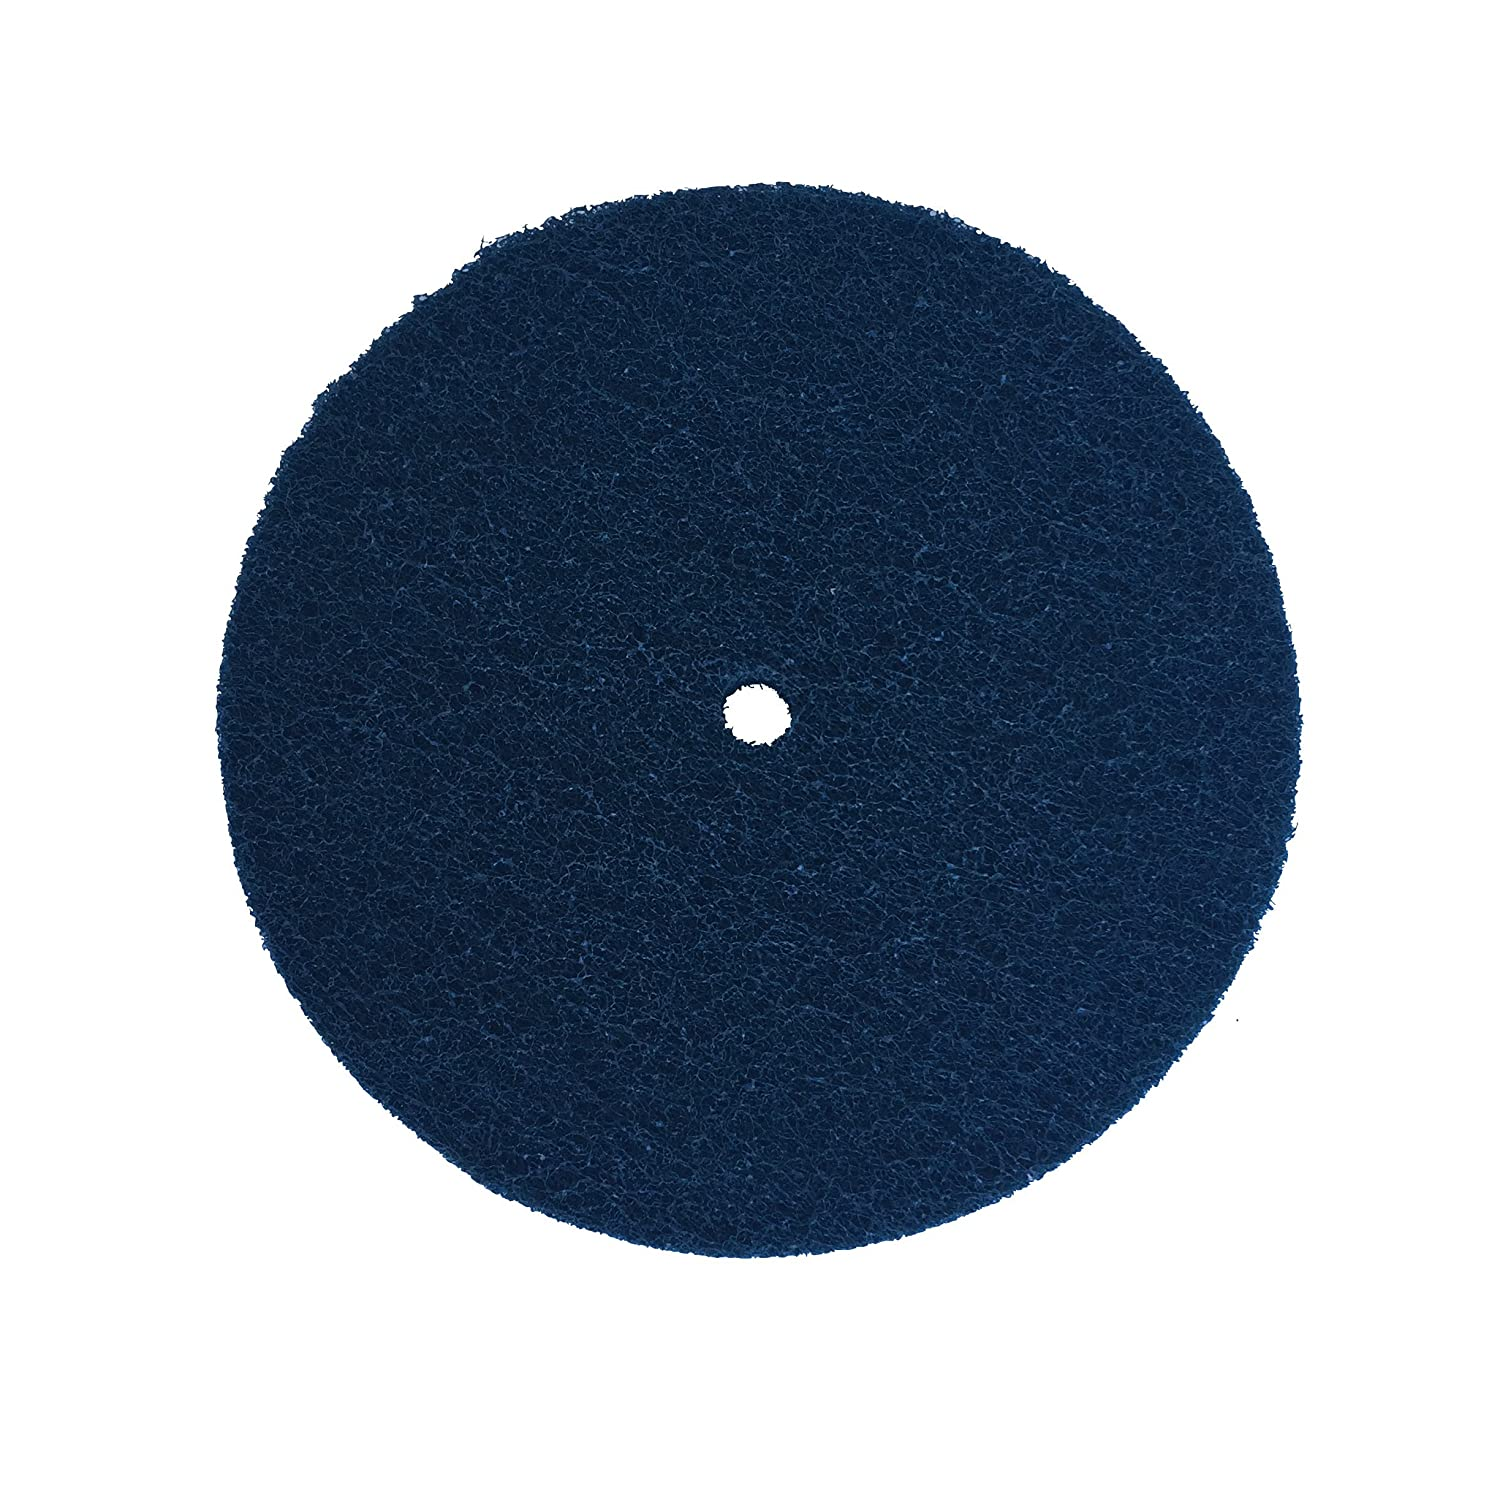 Renegade Products 8 Diameter Surface Prep Buff and Blend Disc Medium Blue 150-180 Grit Finish for Sanding /& Polishing Aluminum /& Stainless Steel Maverick Abrasives 2-Ply